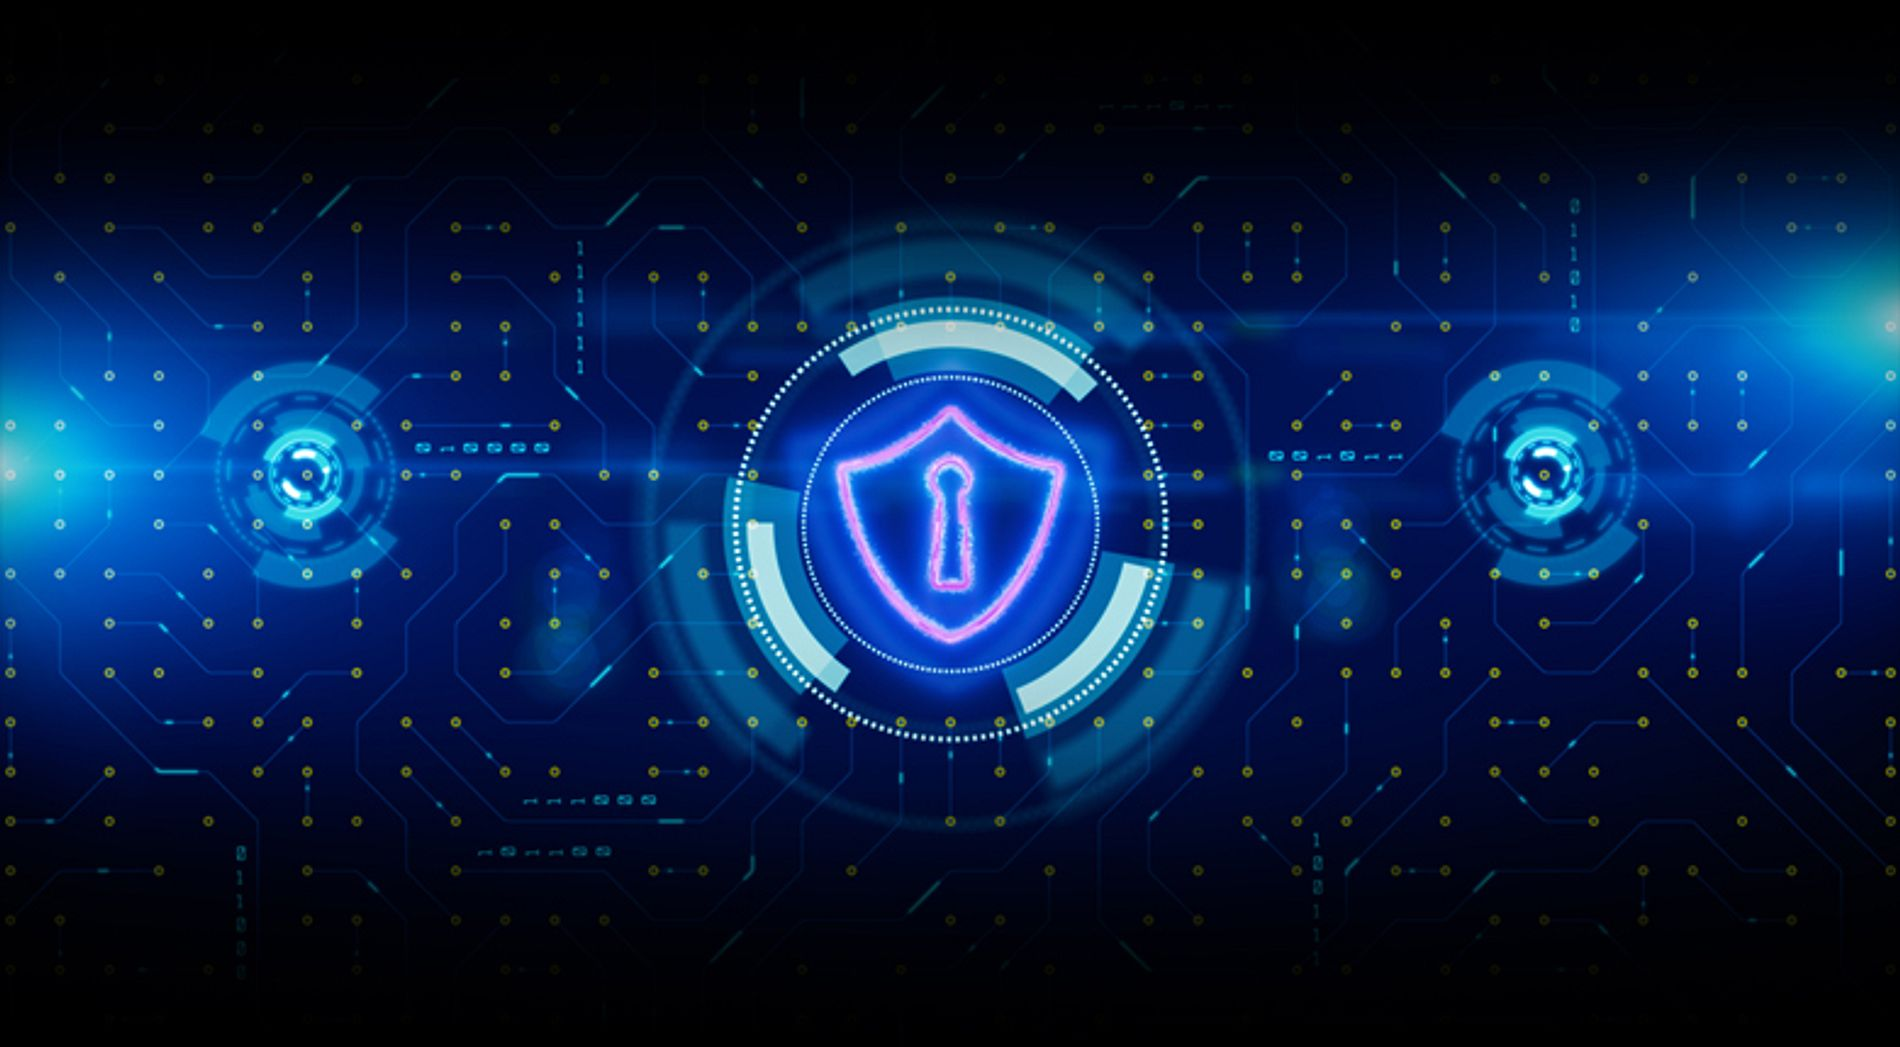 HUD and Shield Icon of Cyber Security